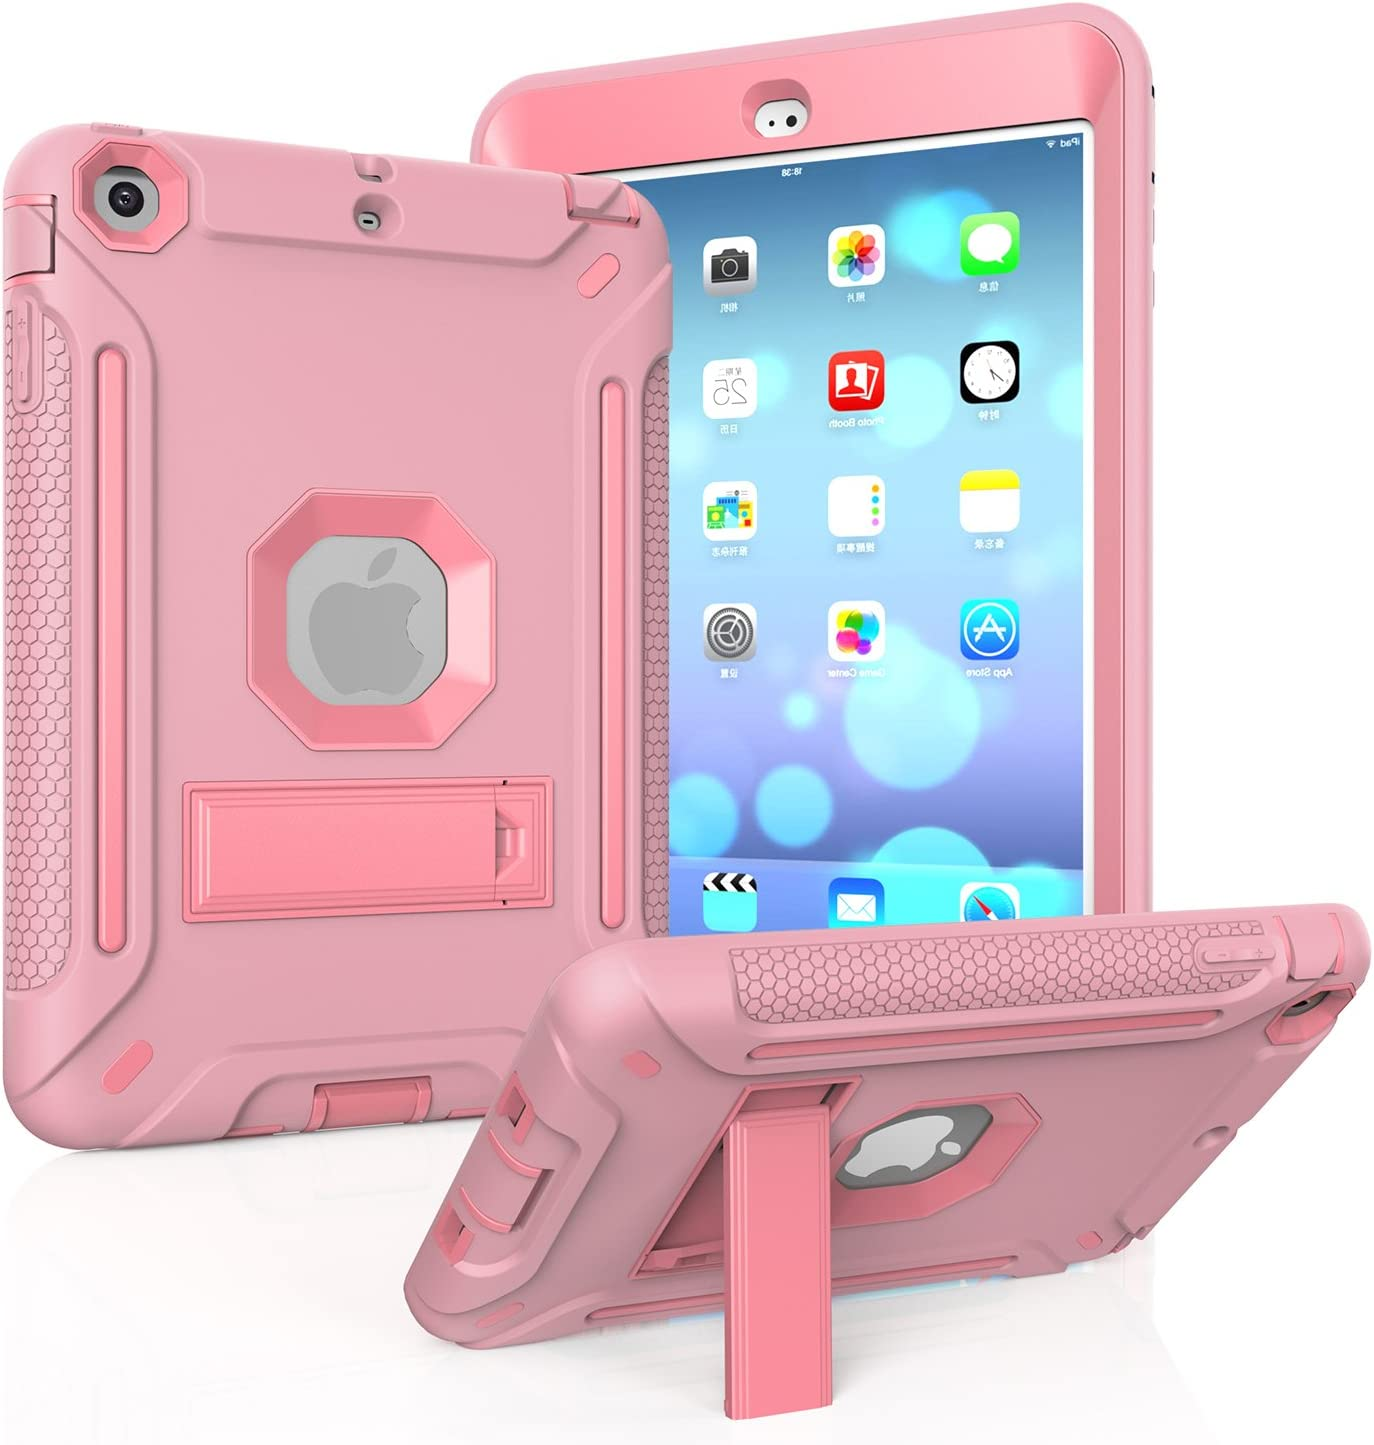 MAKEIT CASE iPad Mini Case, iPad Mini 3 Case Heavy Duty Hybrid Shockproof Protective Silicone and PC Hard Case Full-Body Rugged Protective Case with Kickstand for iPad Mini 1/2/3 (Rose Gold)